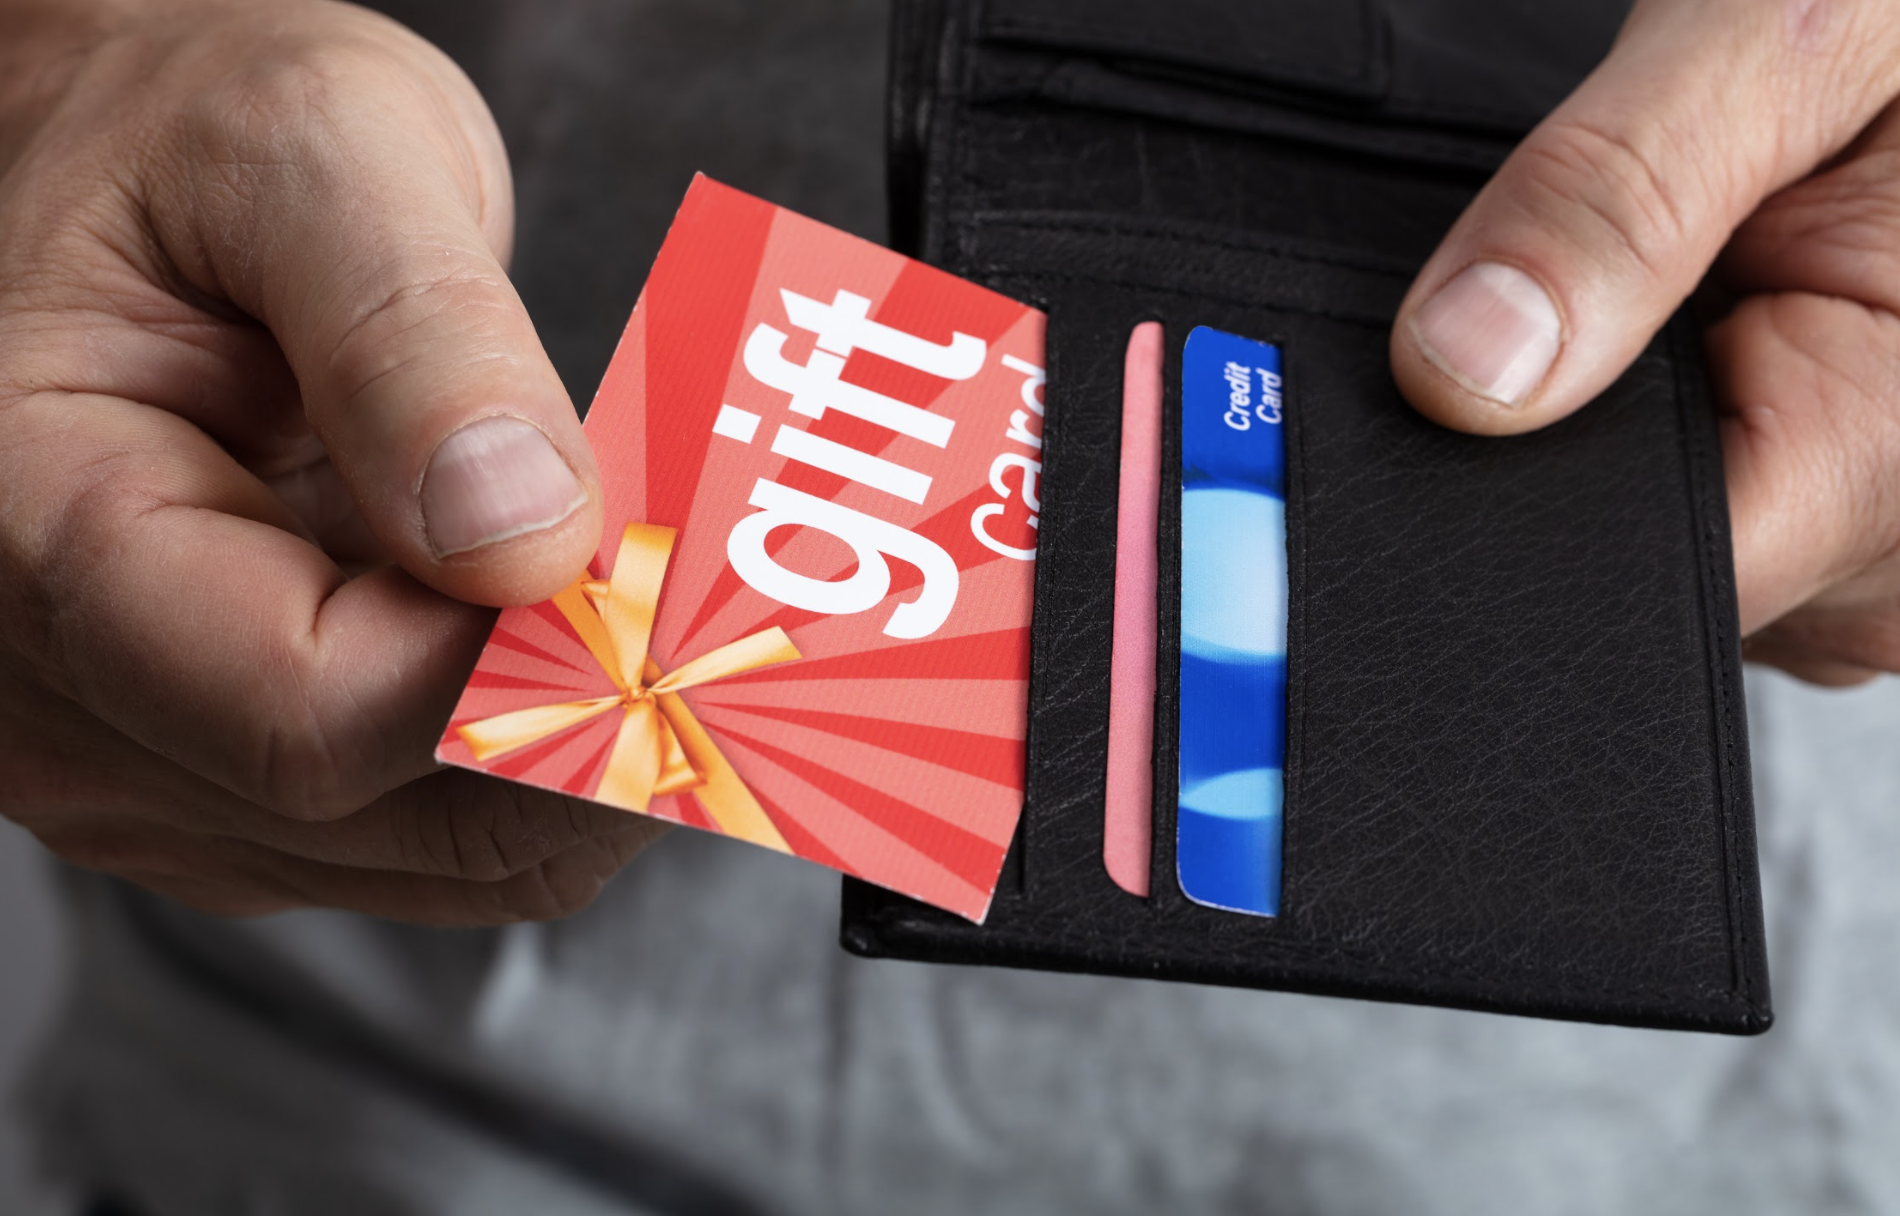 How To Make The Most Out Of Unused Gift Cards